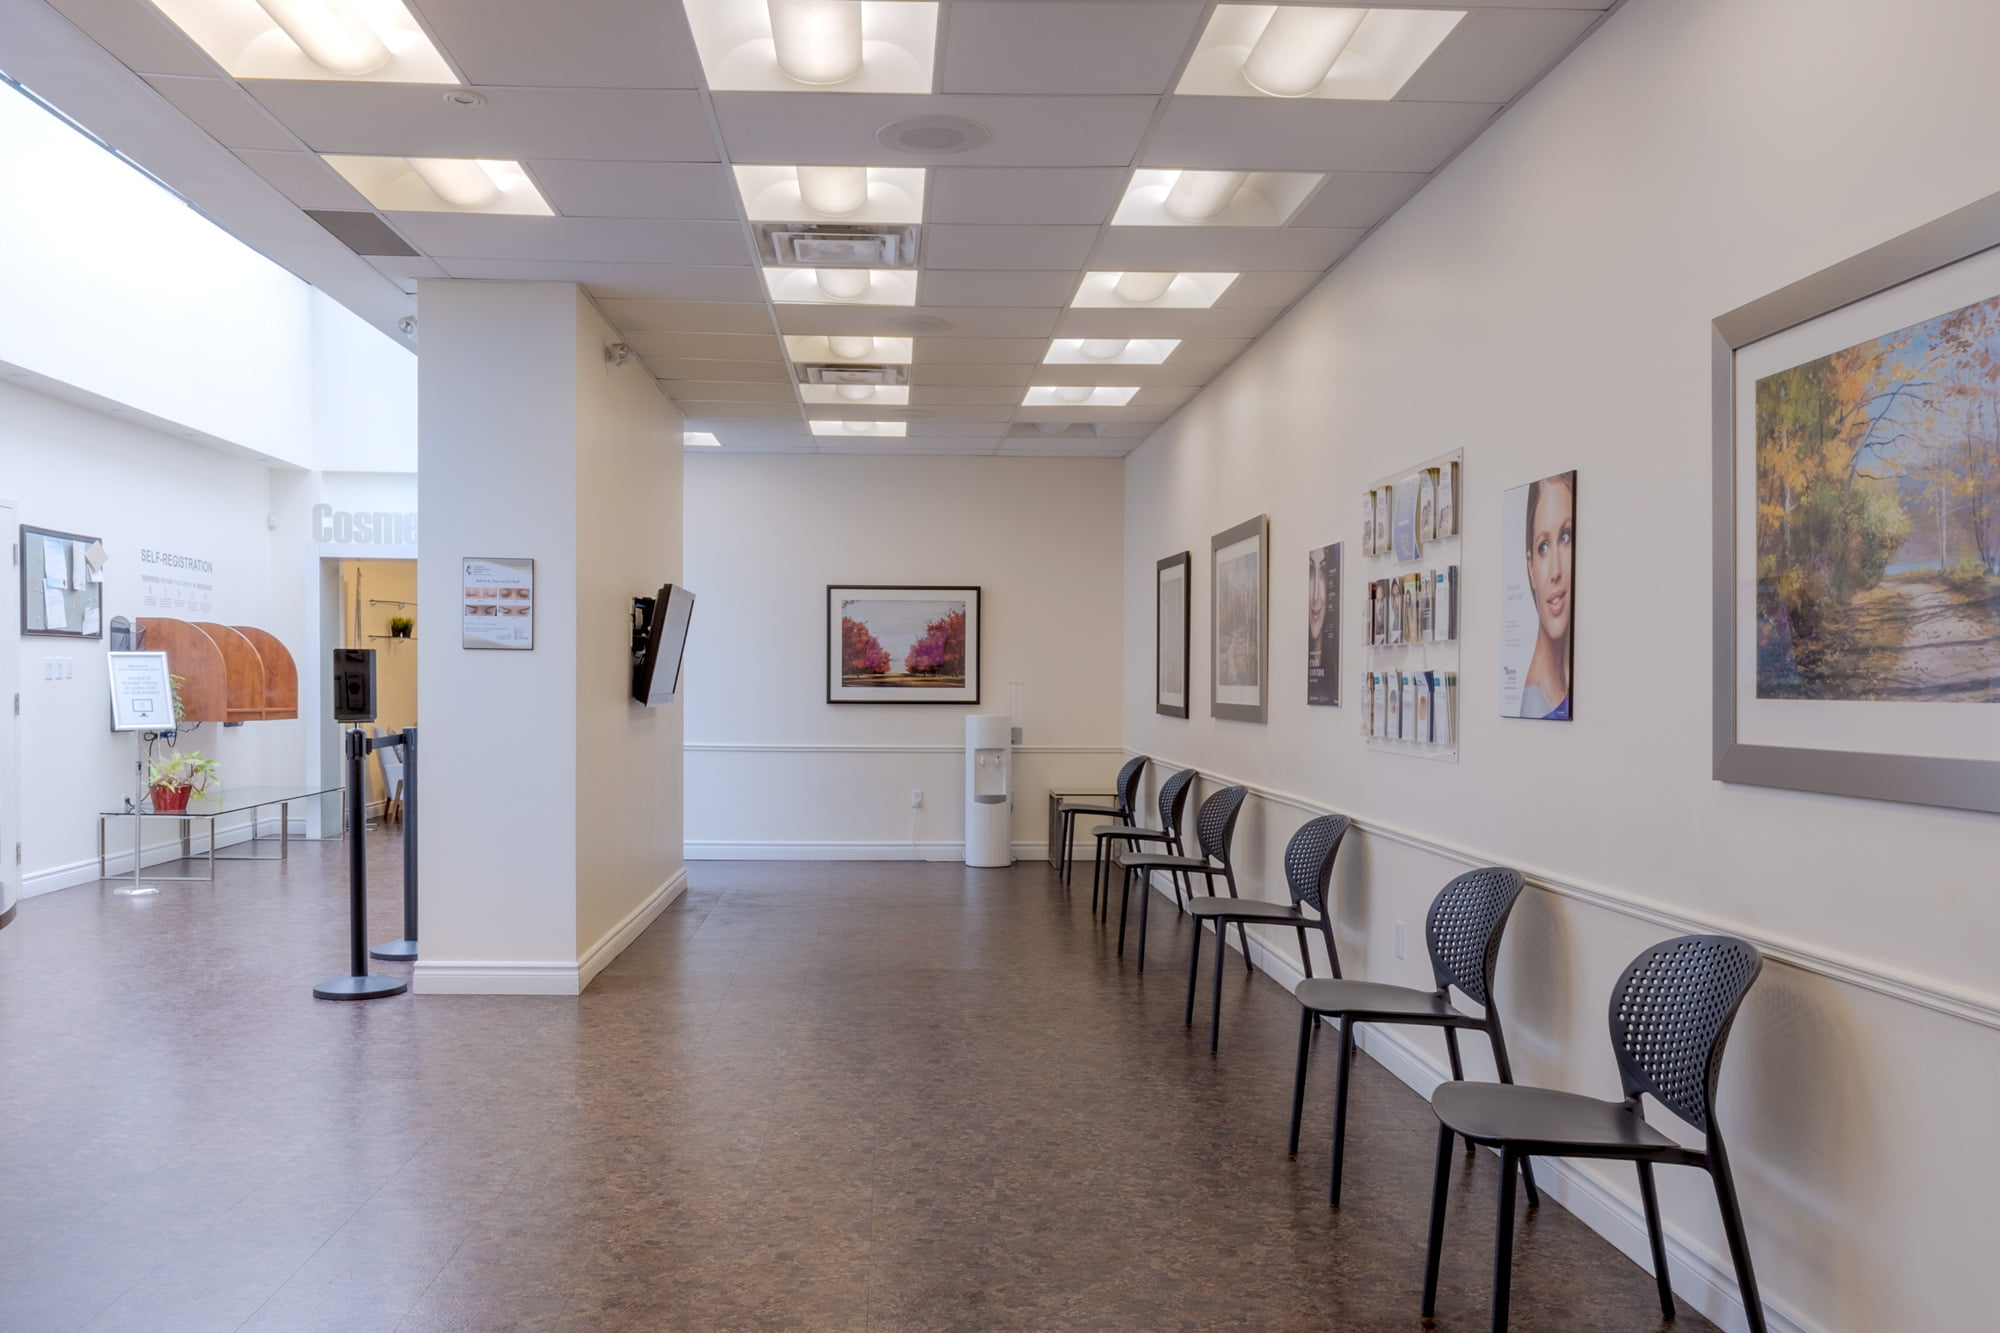 Cosmetic Clinic Photography